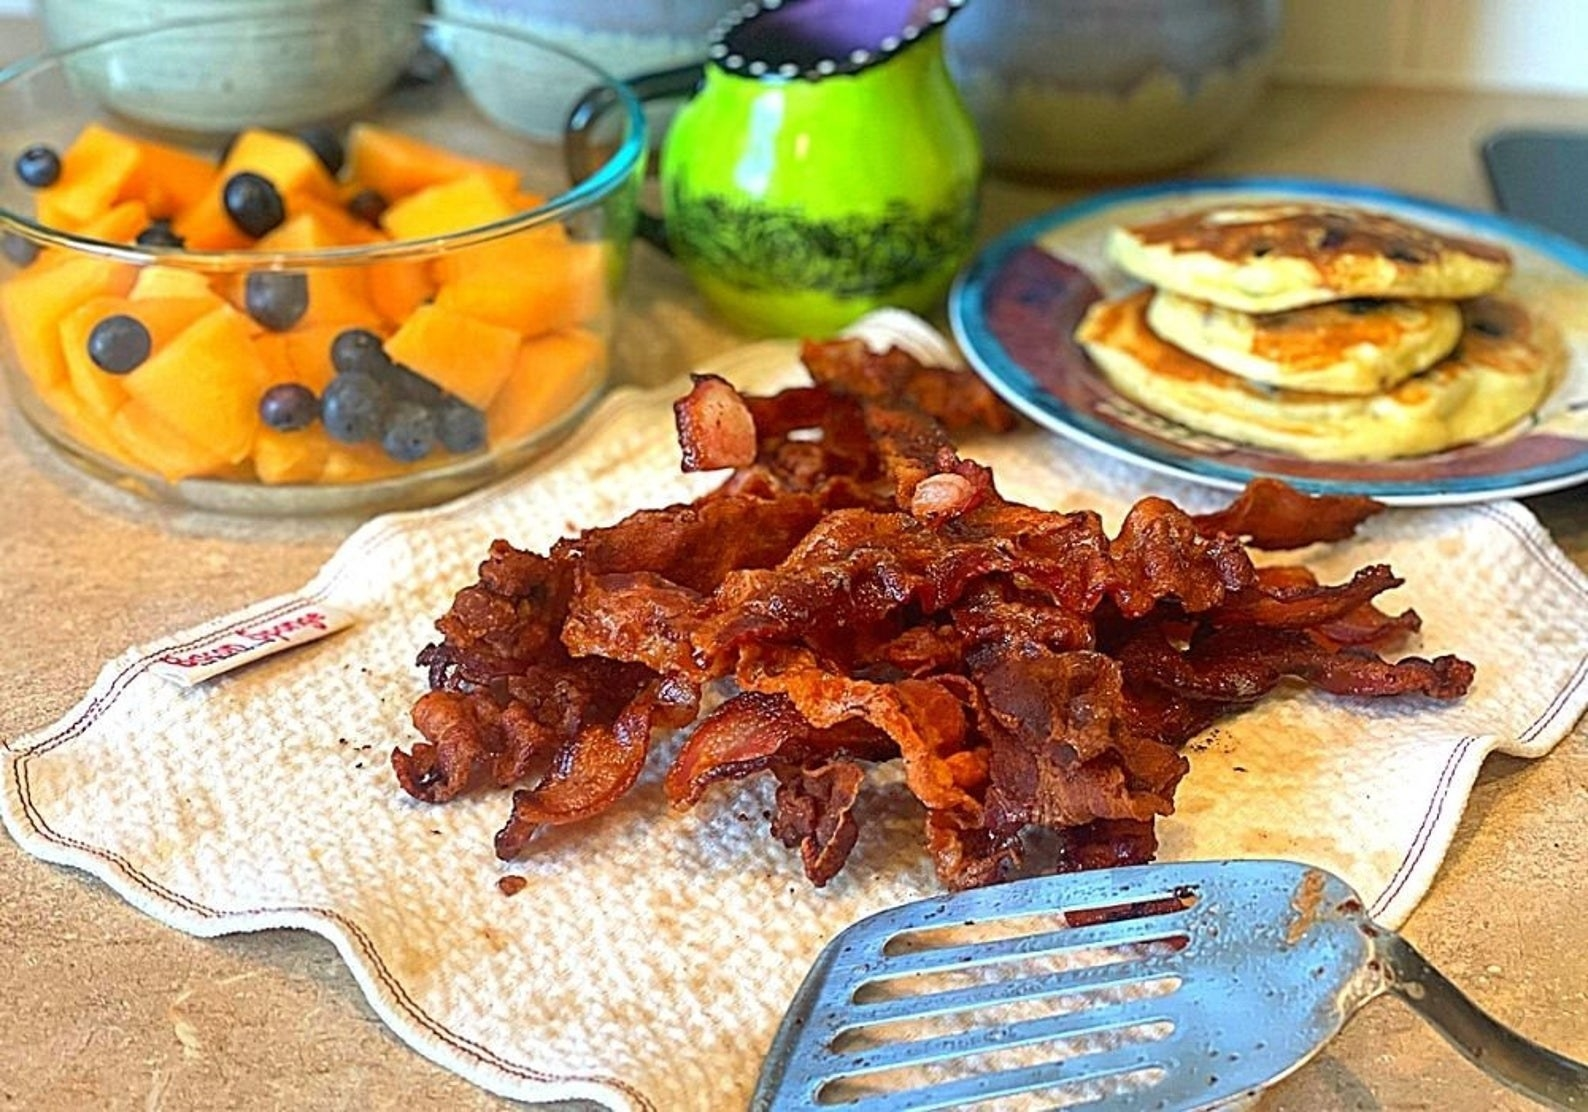 a pile of freshly cooked bacon on top of the bacon sponge